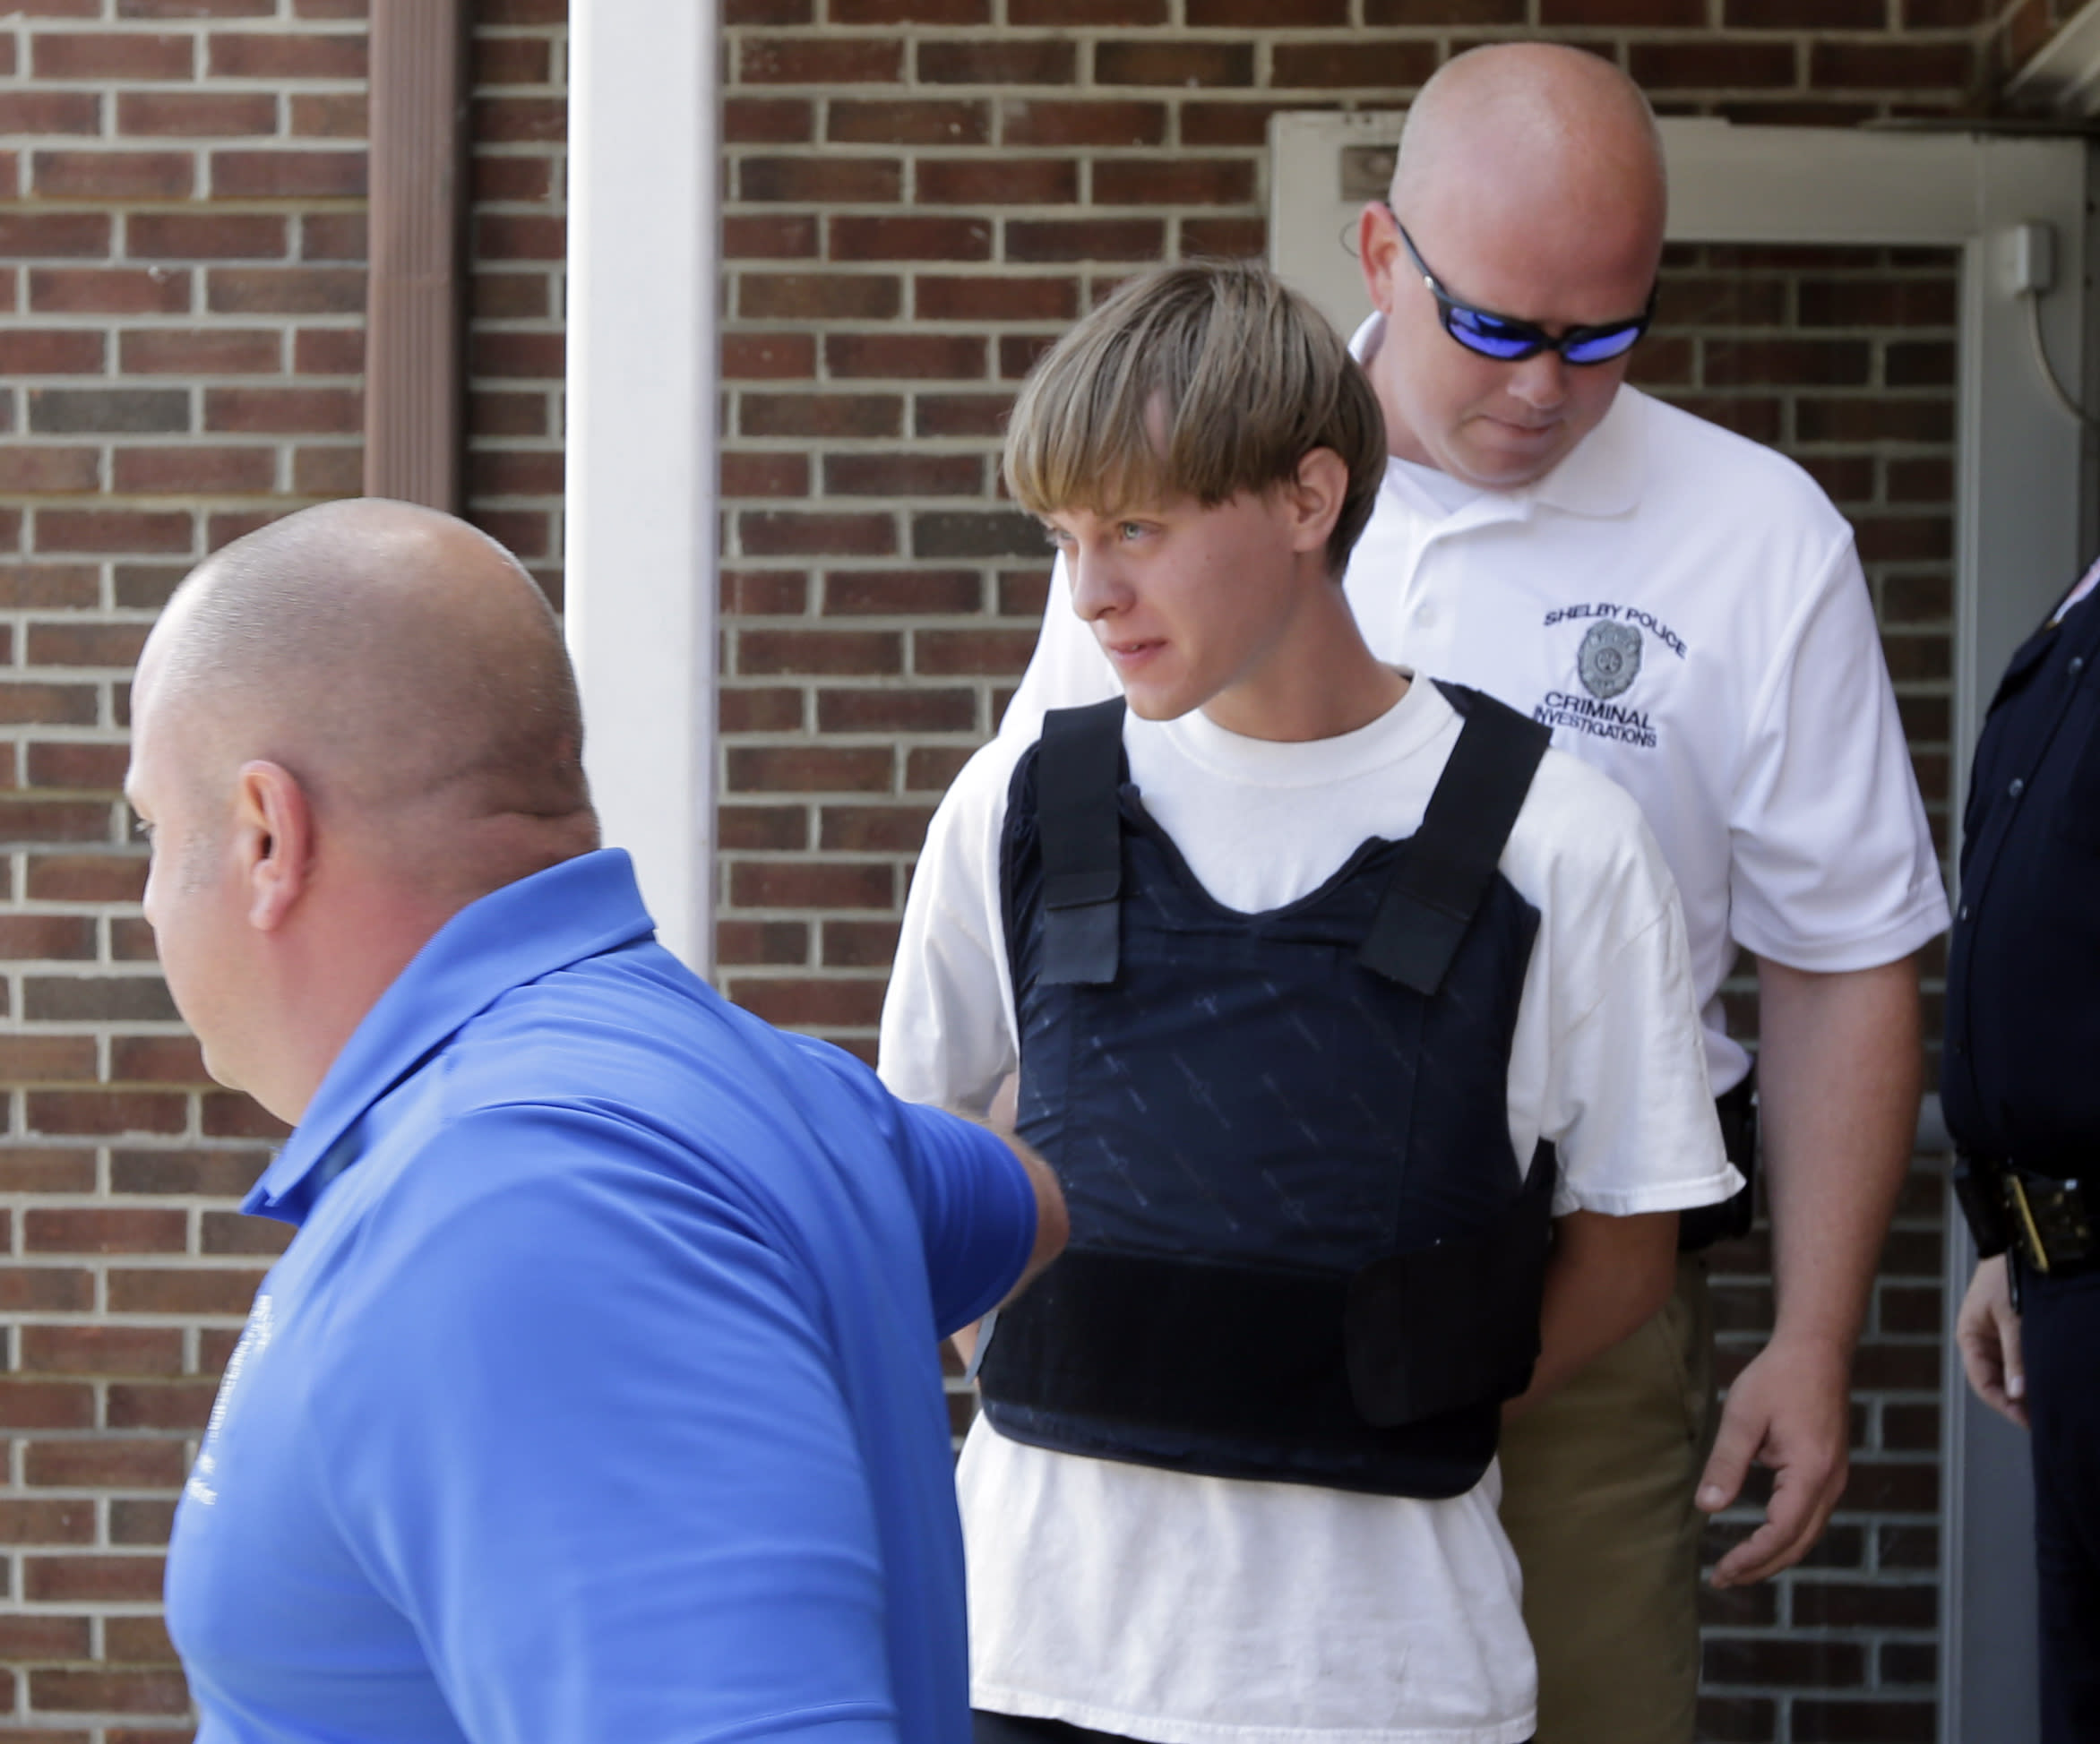 U.S. prosecutors to seek death penalty in South Carolina church shooting